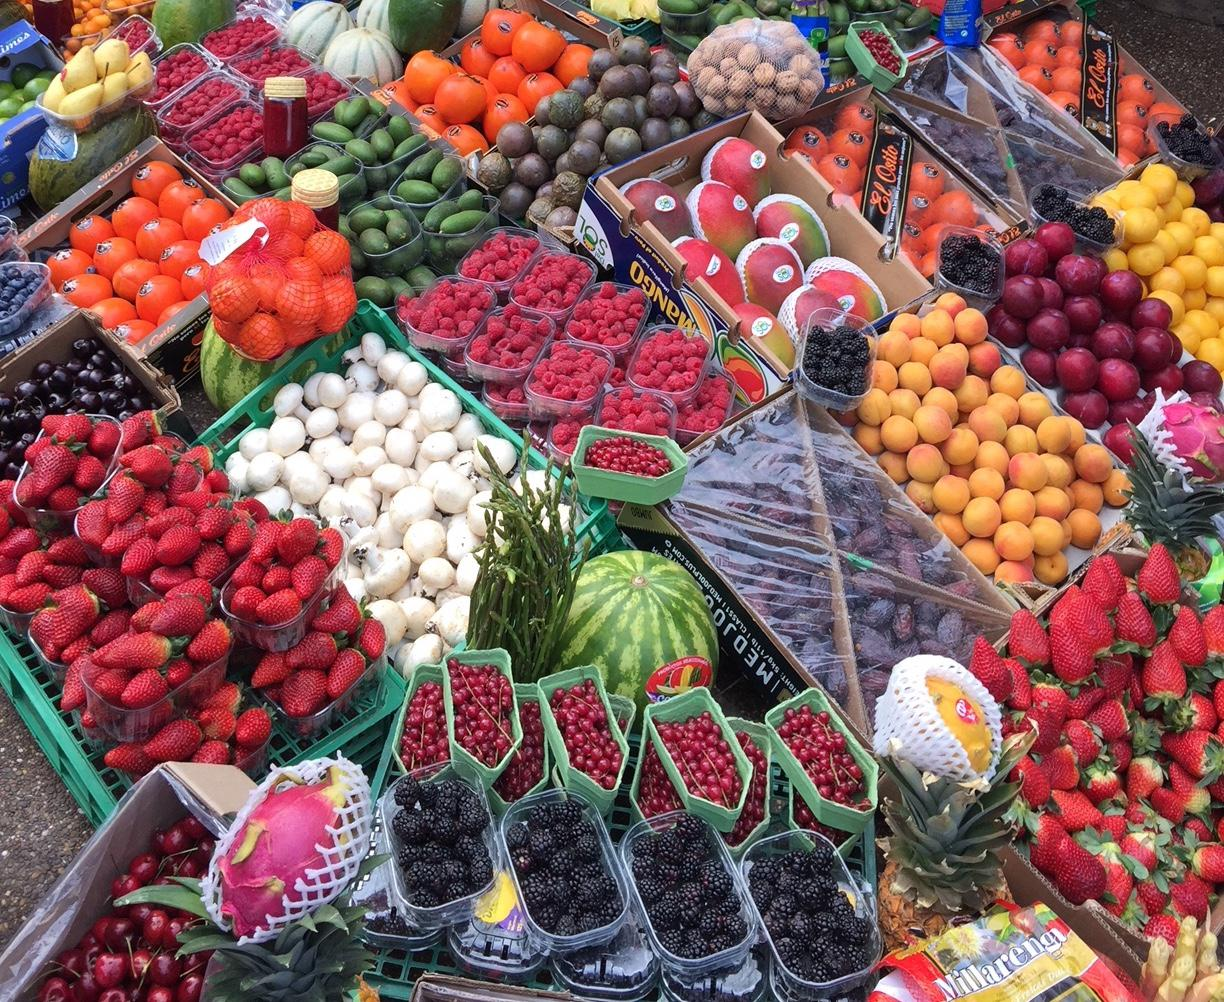 moroccan market research Download all the latest market reports you need on the banking industry in morocco click here to instantly access all the reports, in one place.